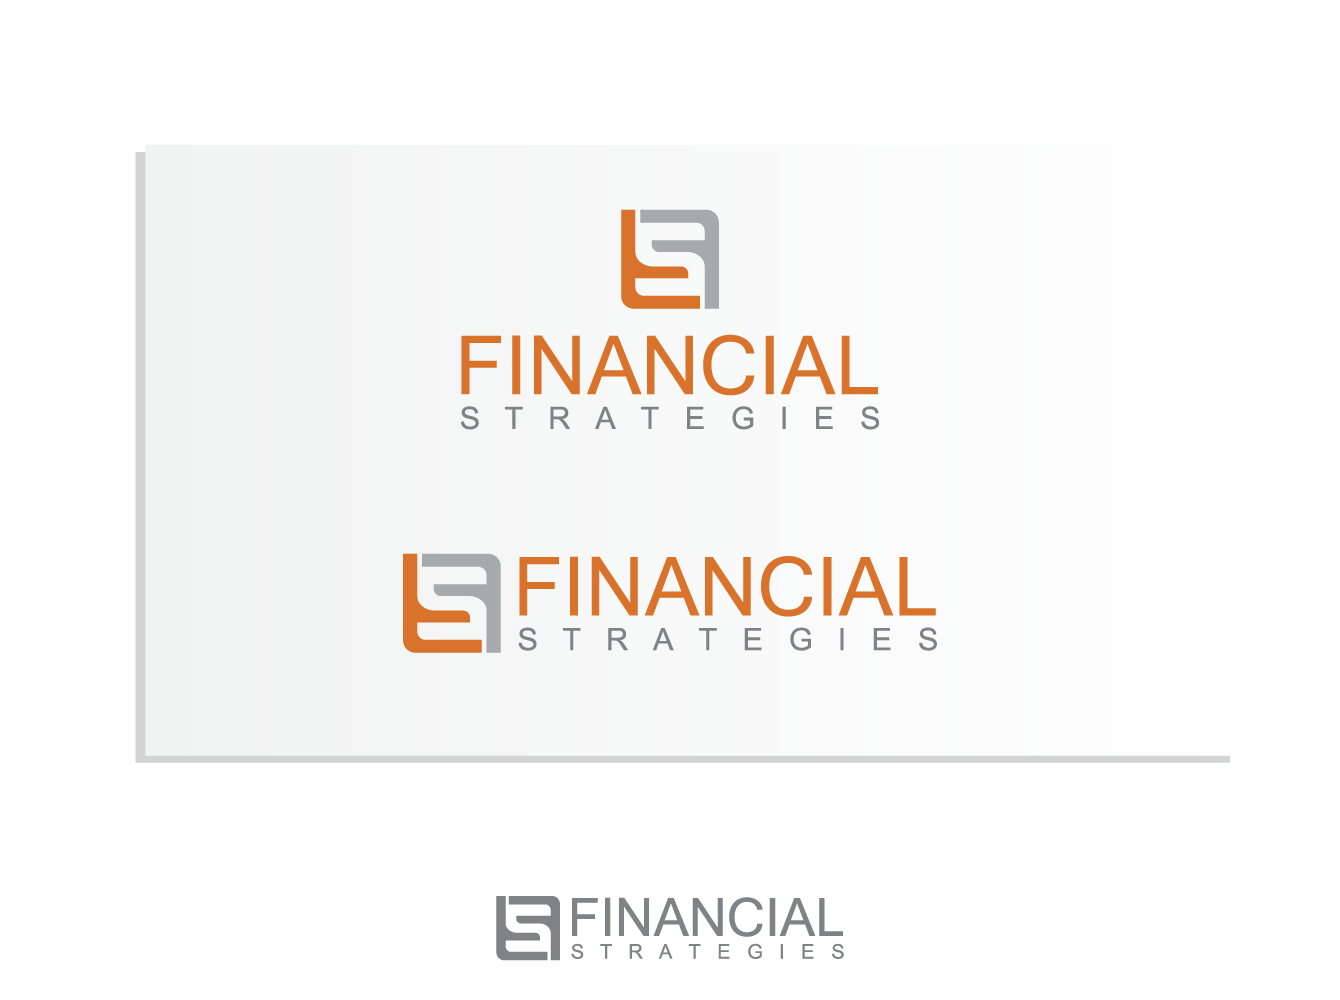 Logo Design by Andi Muhtasyam - Entry No. 99 in the Logo Design Contest Logo Design Needed for Exciting New Company FS Financial Strategies.